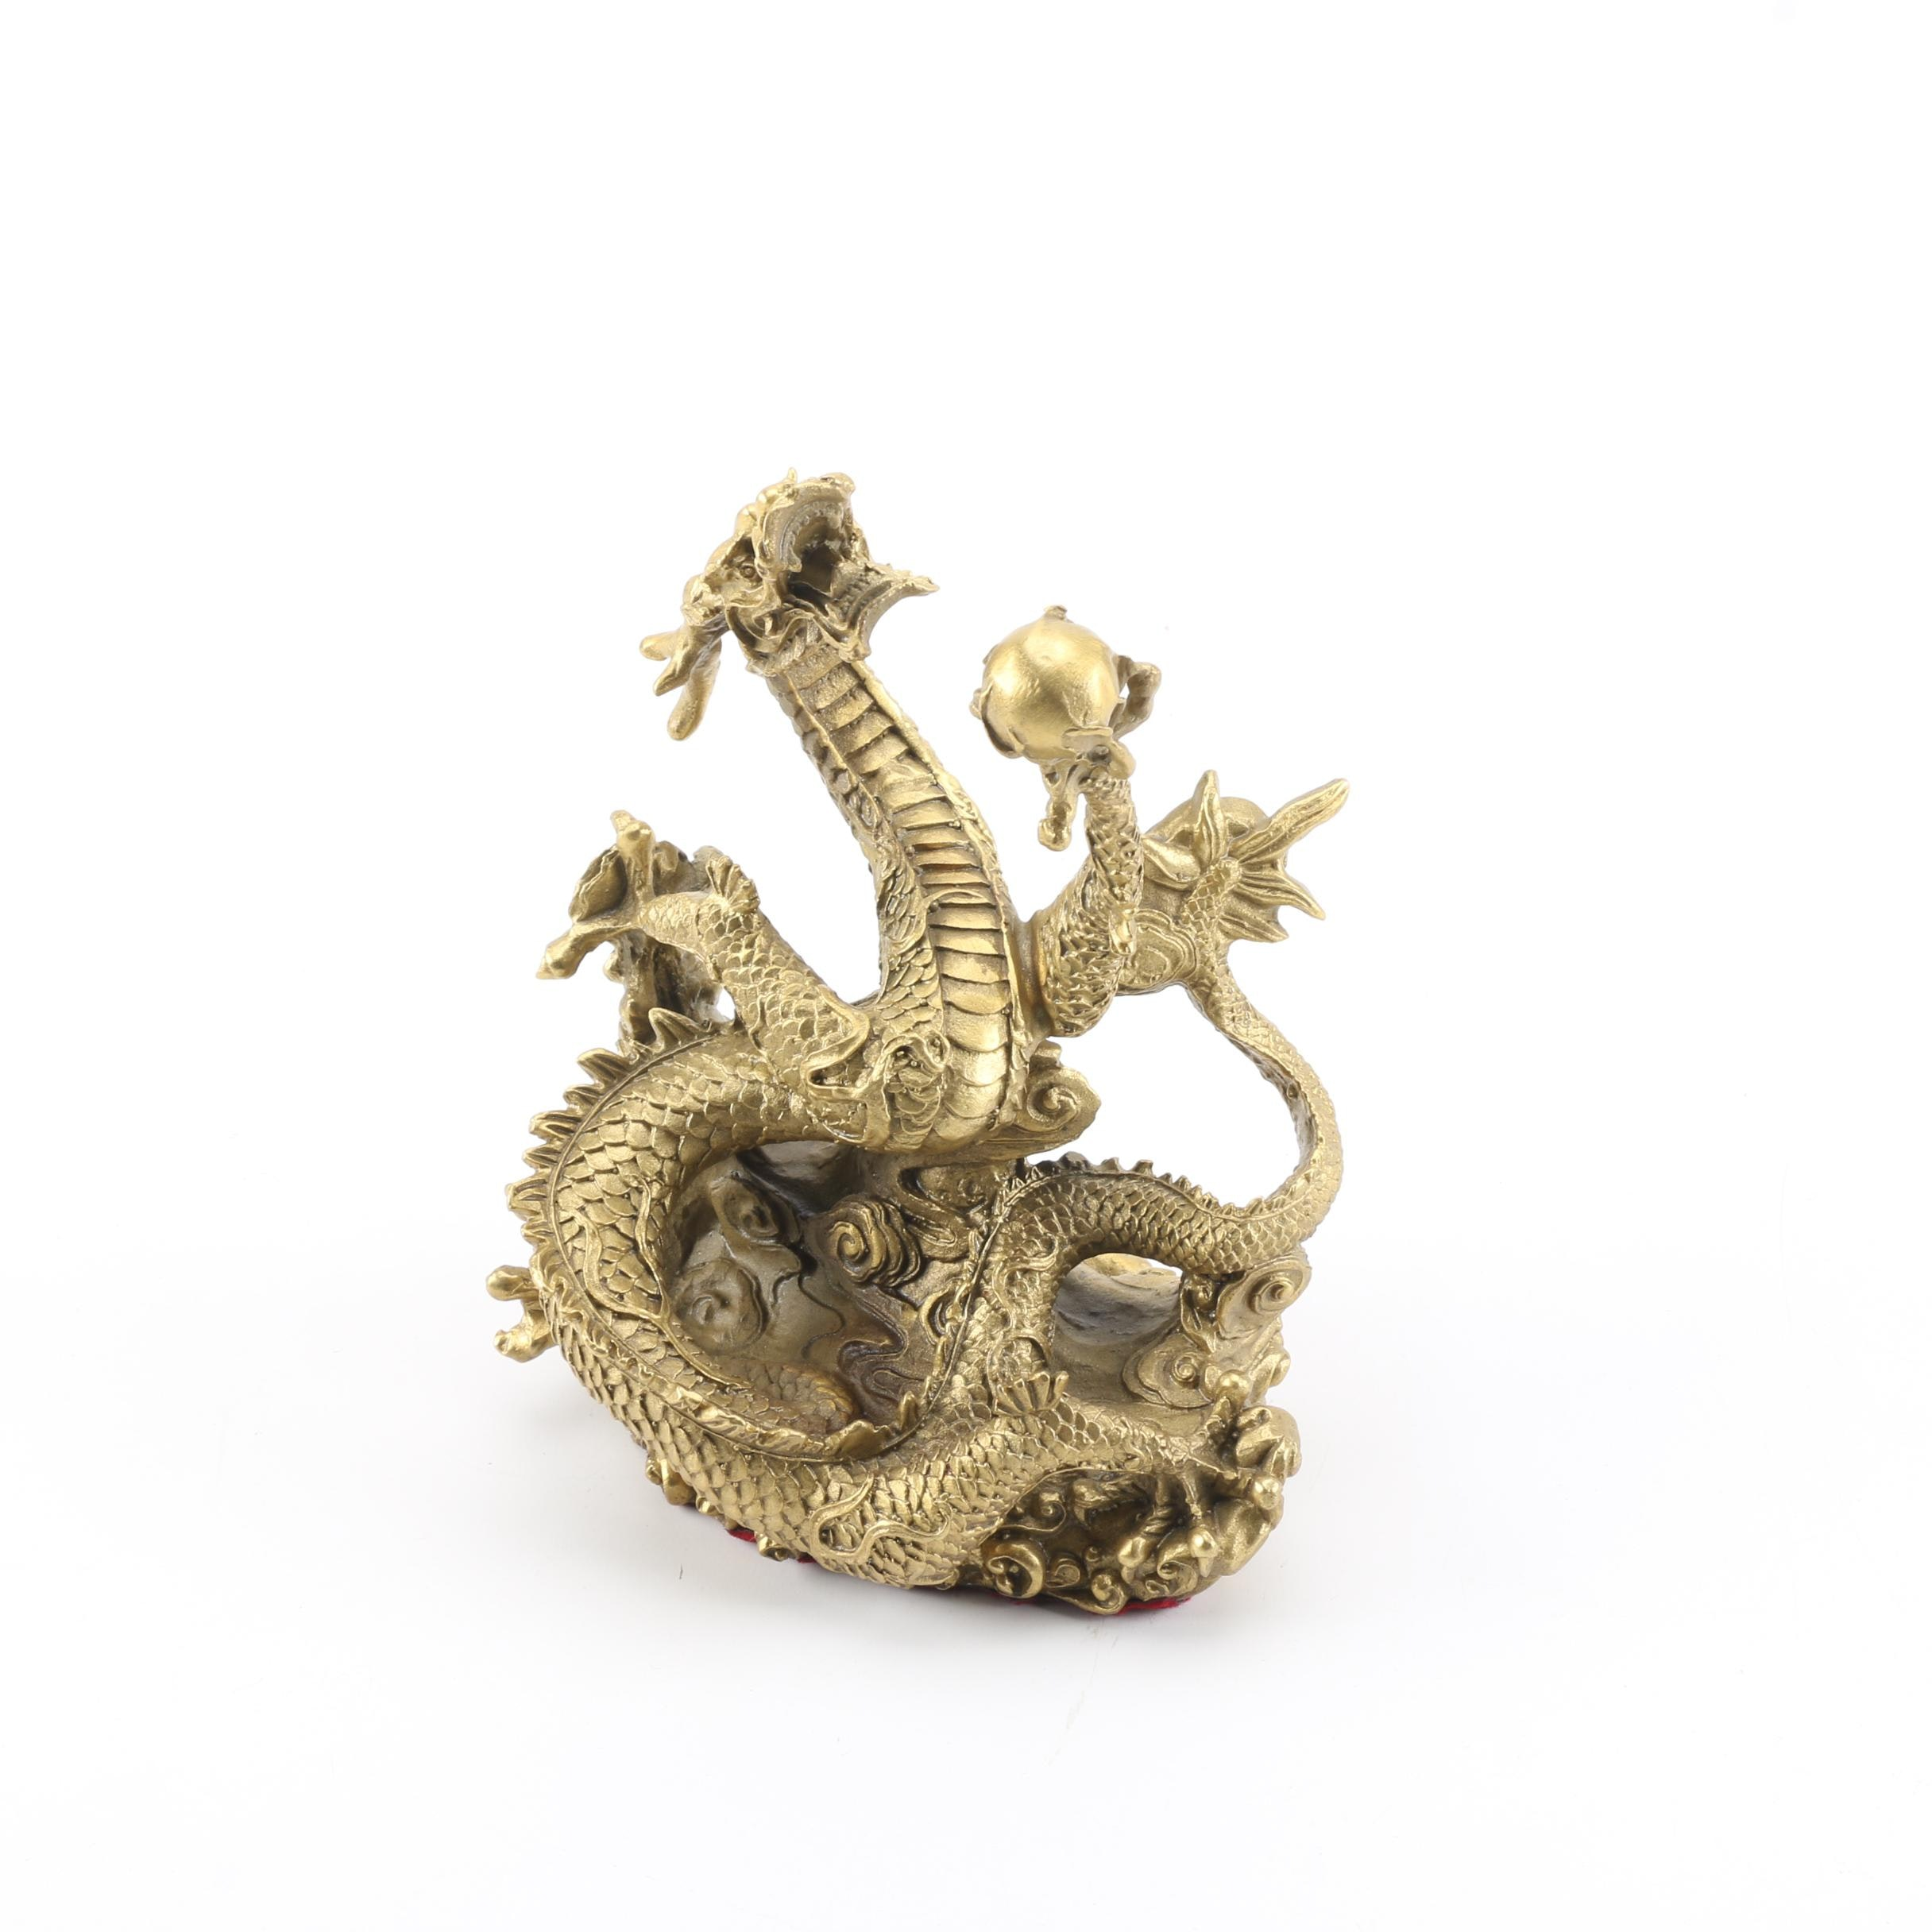 Chinese Brass Dragon Figurine Holding a Pearl